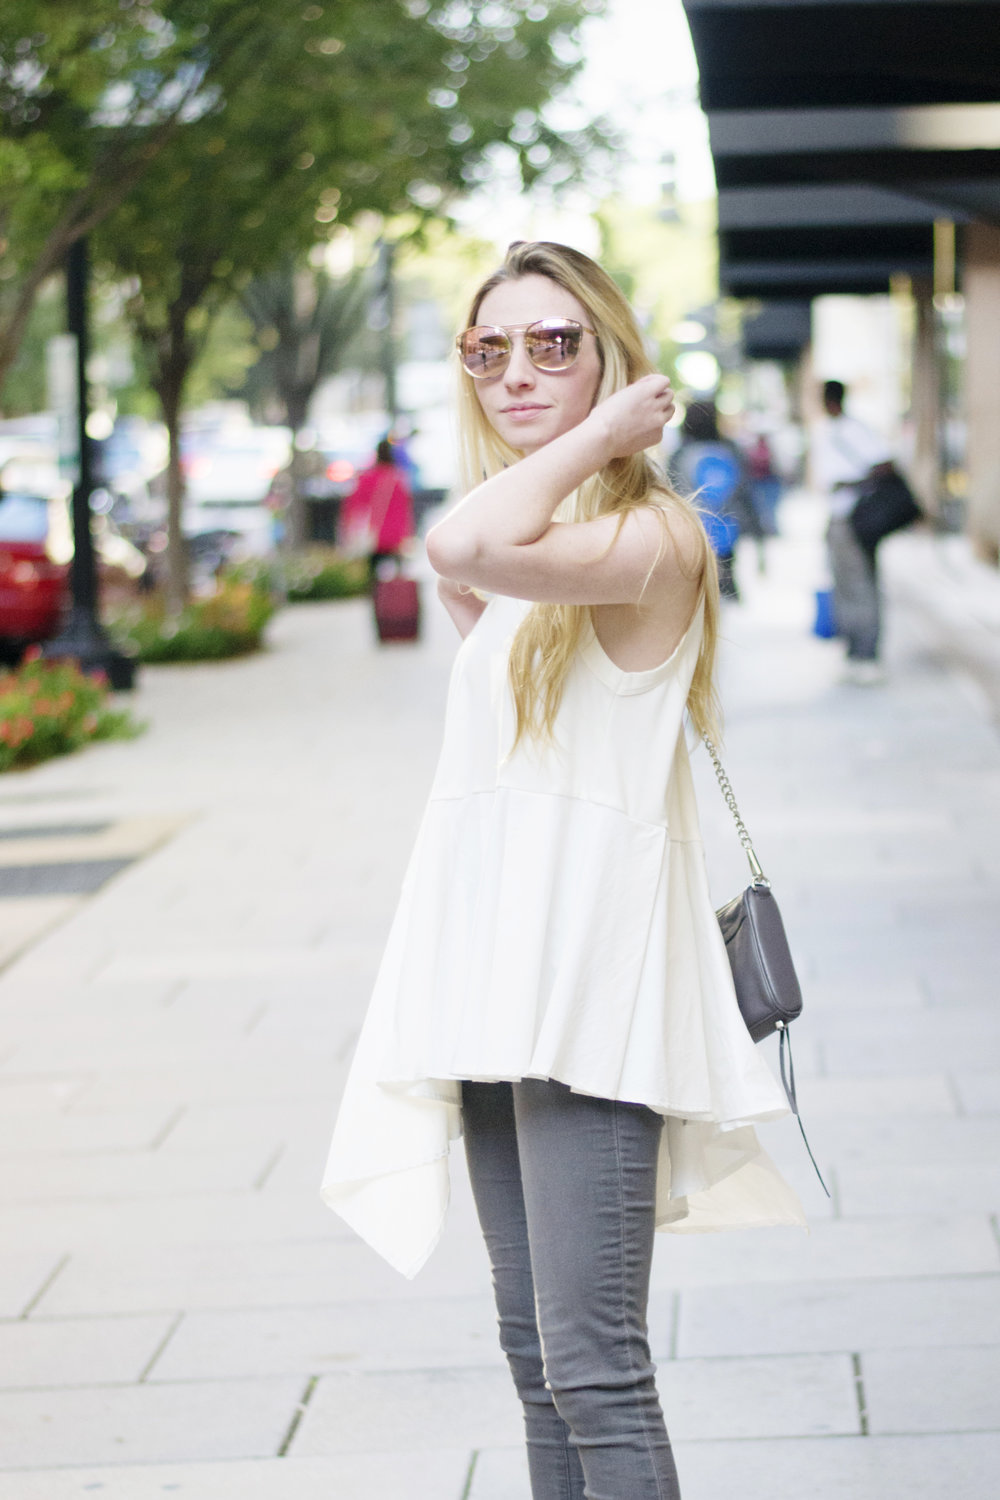 Ruffled Tank Top (via Chic Now)